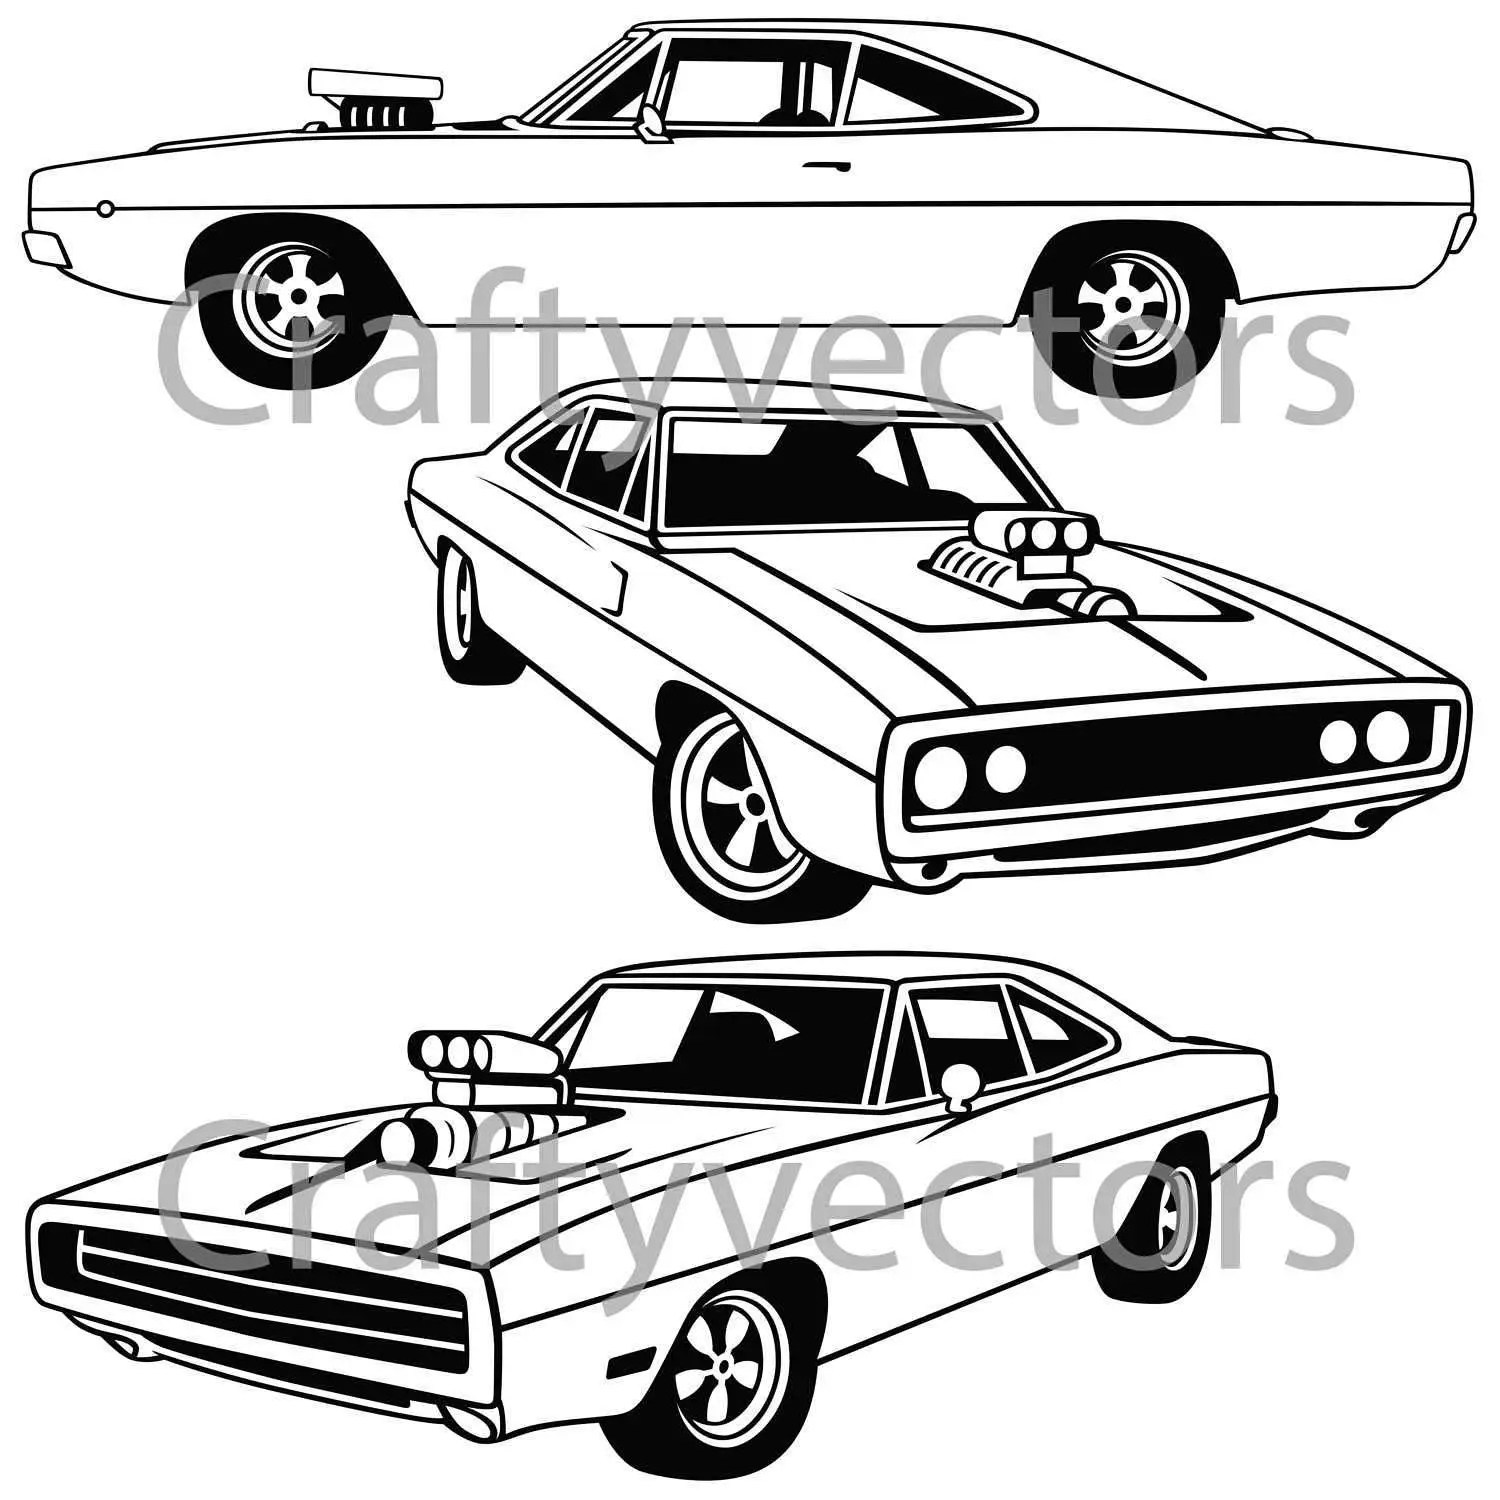 Dodge Charger Vector File From Craftyvectors On Etsy